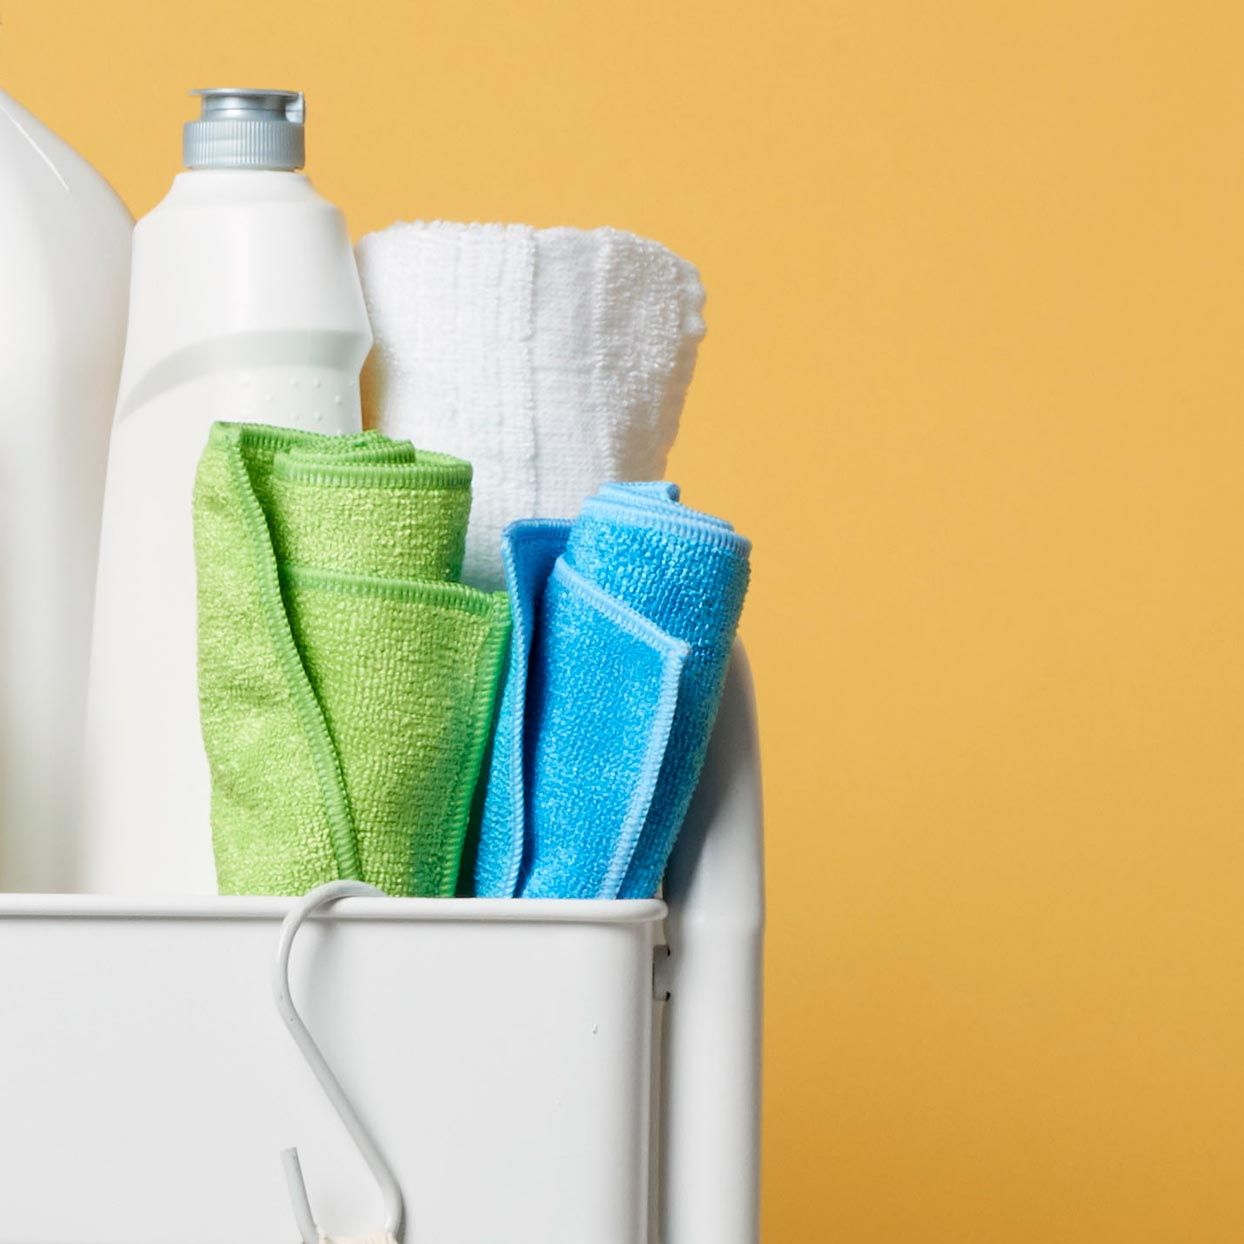 nontoxic cleaning wipes